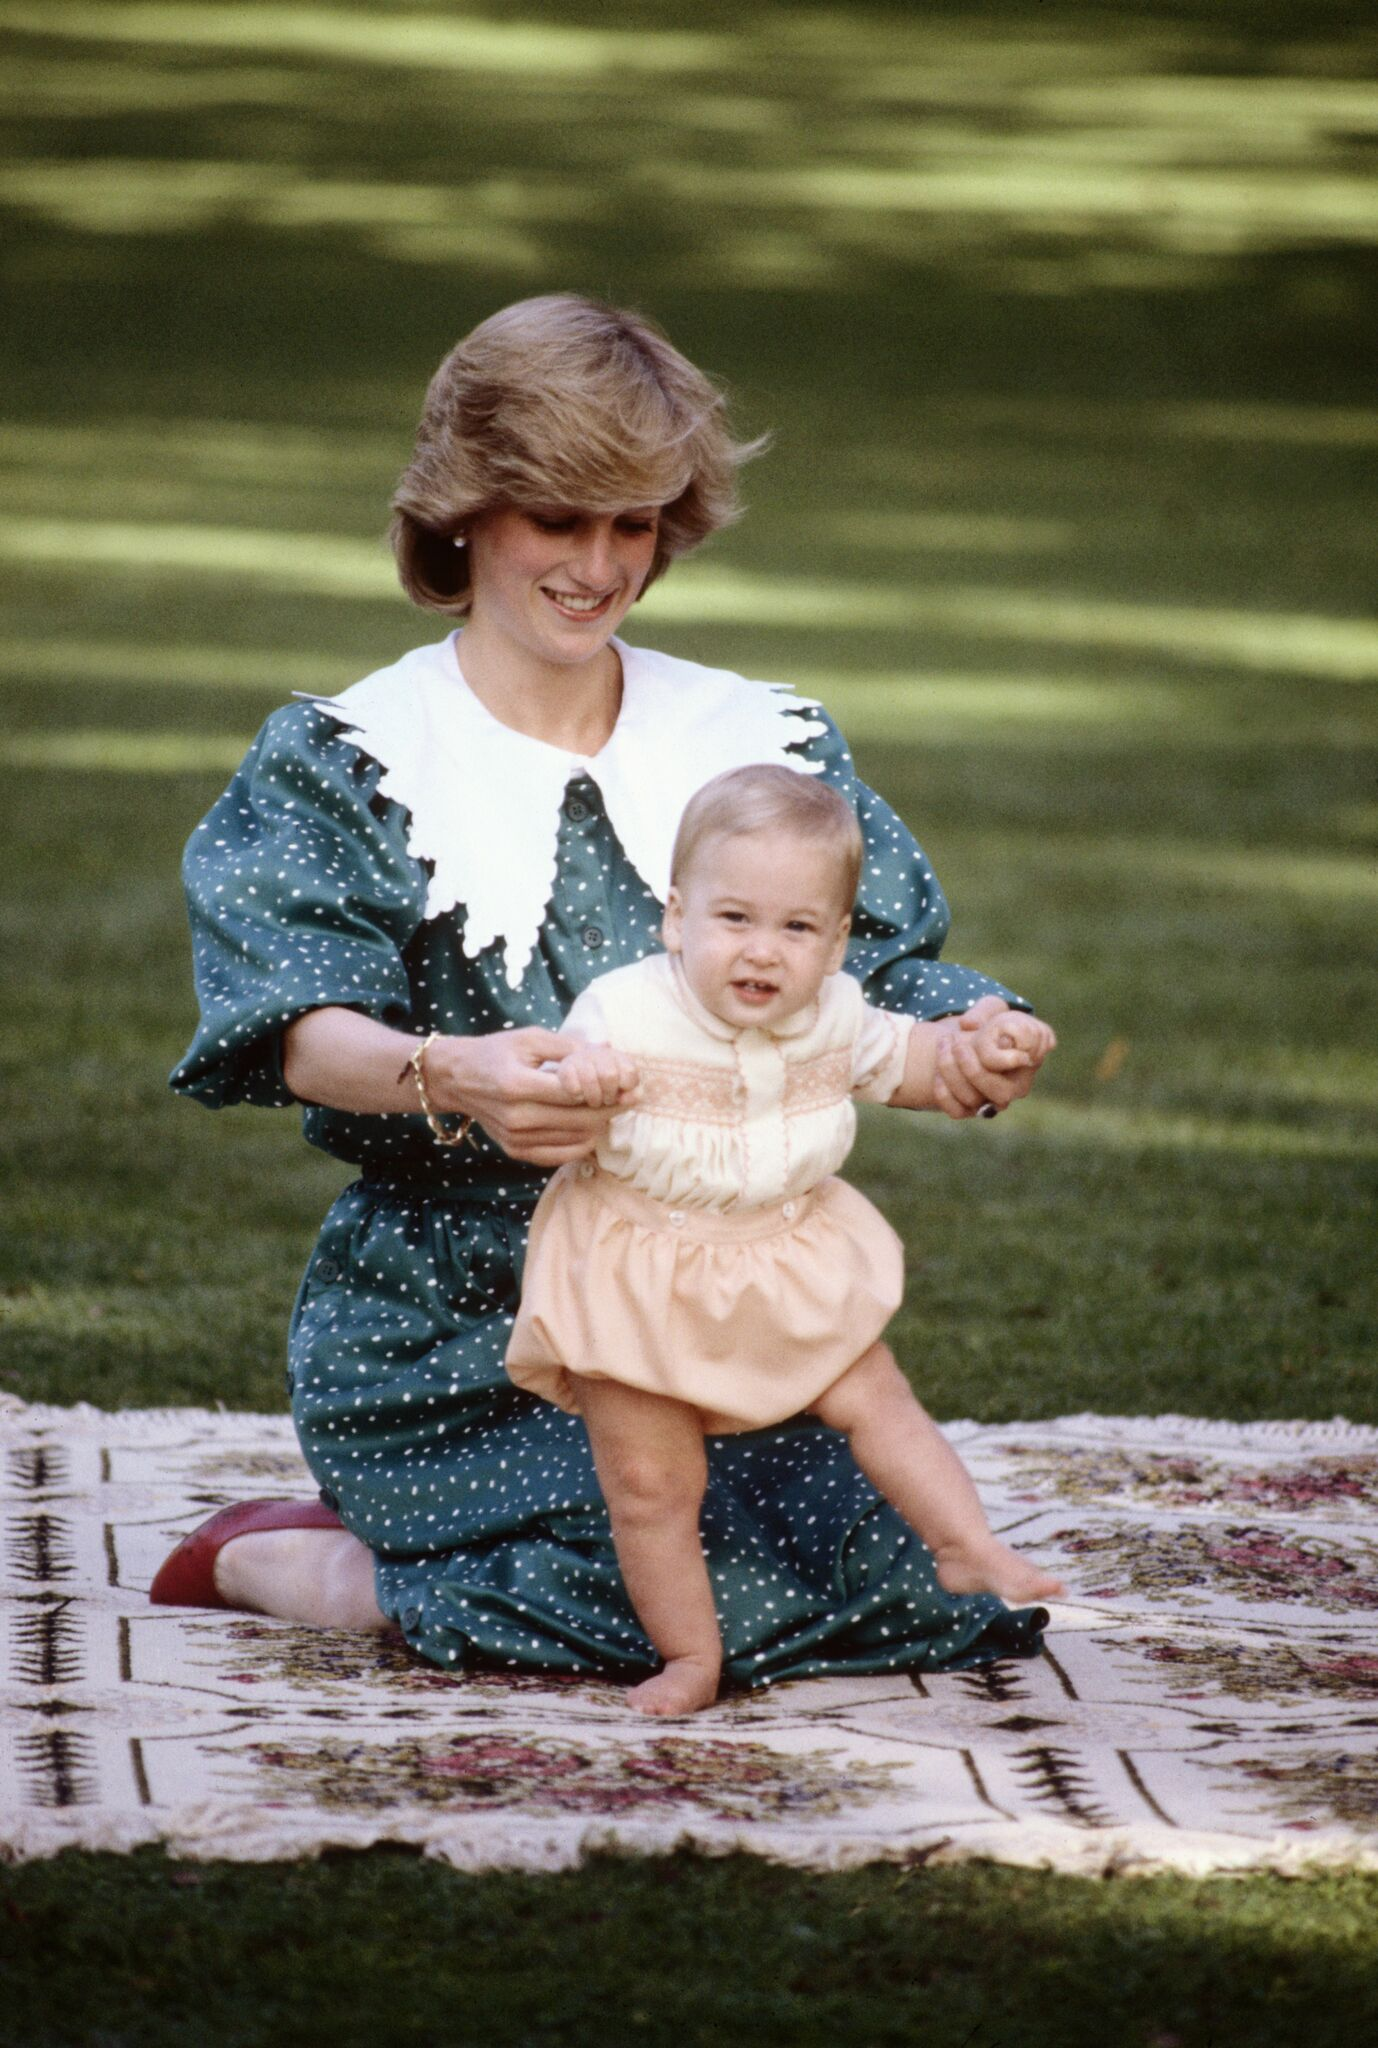 Diana Princess of Wales with Prince William on the lawn of Government House | Getty Images